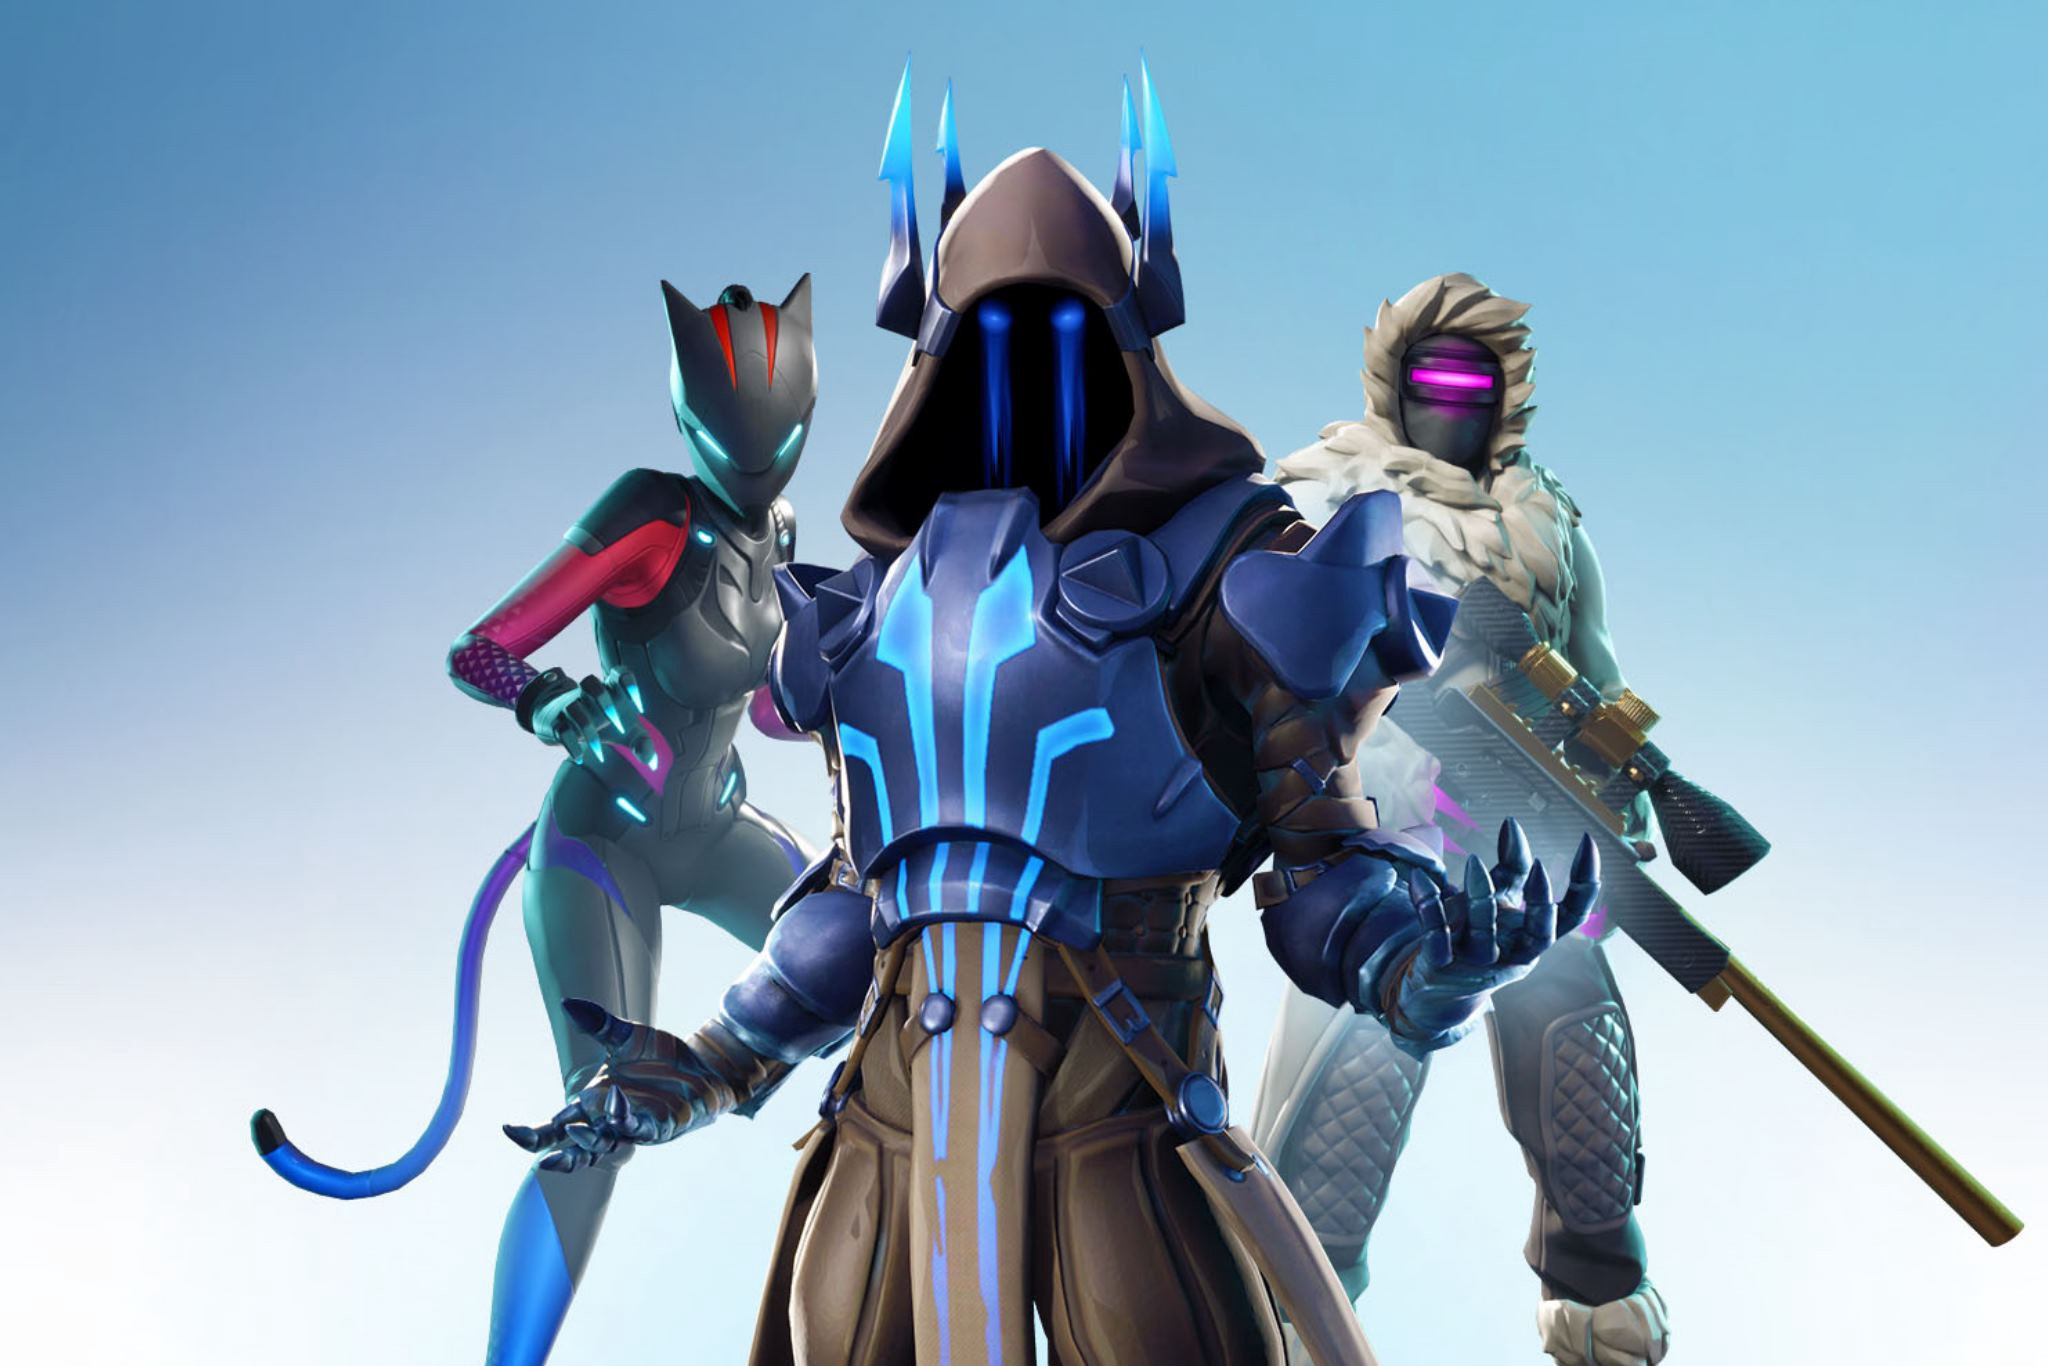 With Over 200m Users & 2bn In Revenue Here's Why Fortnite